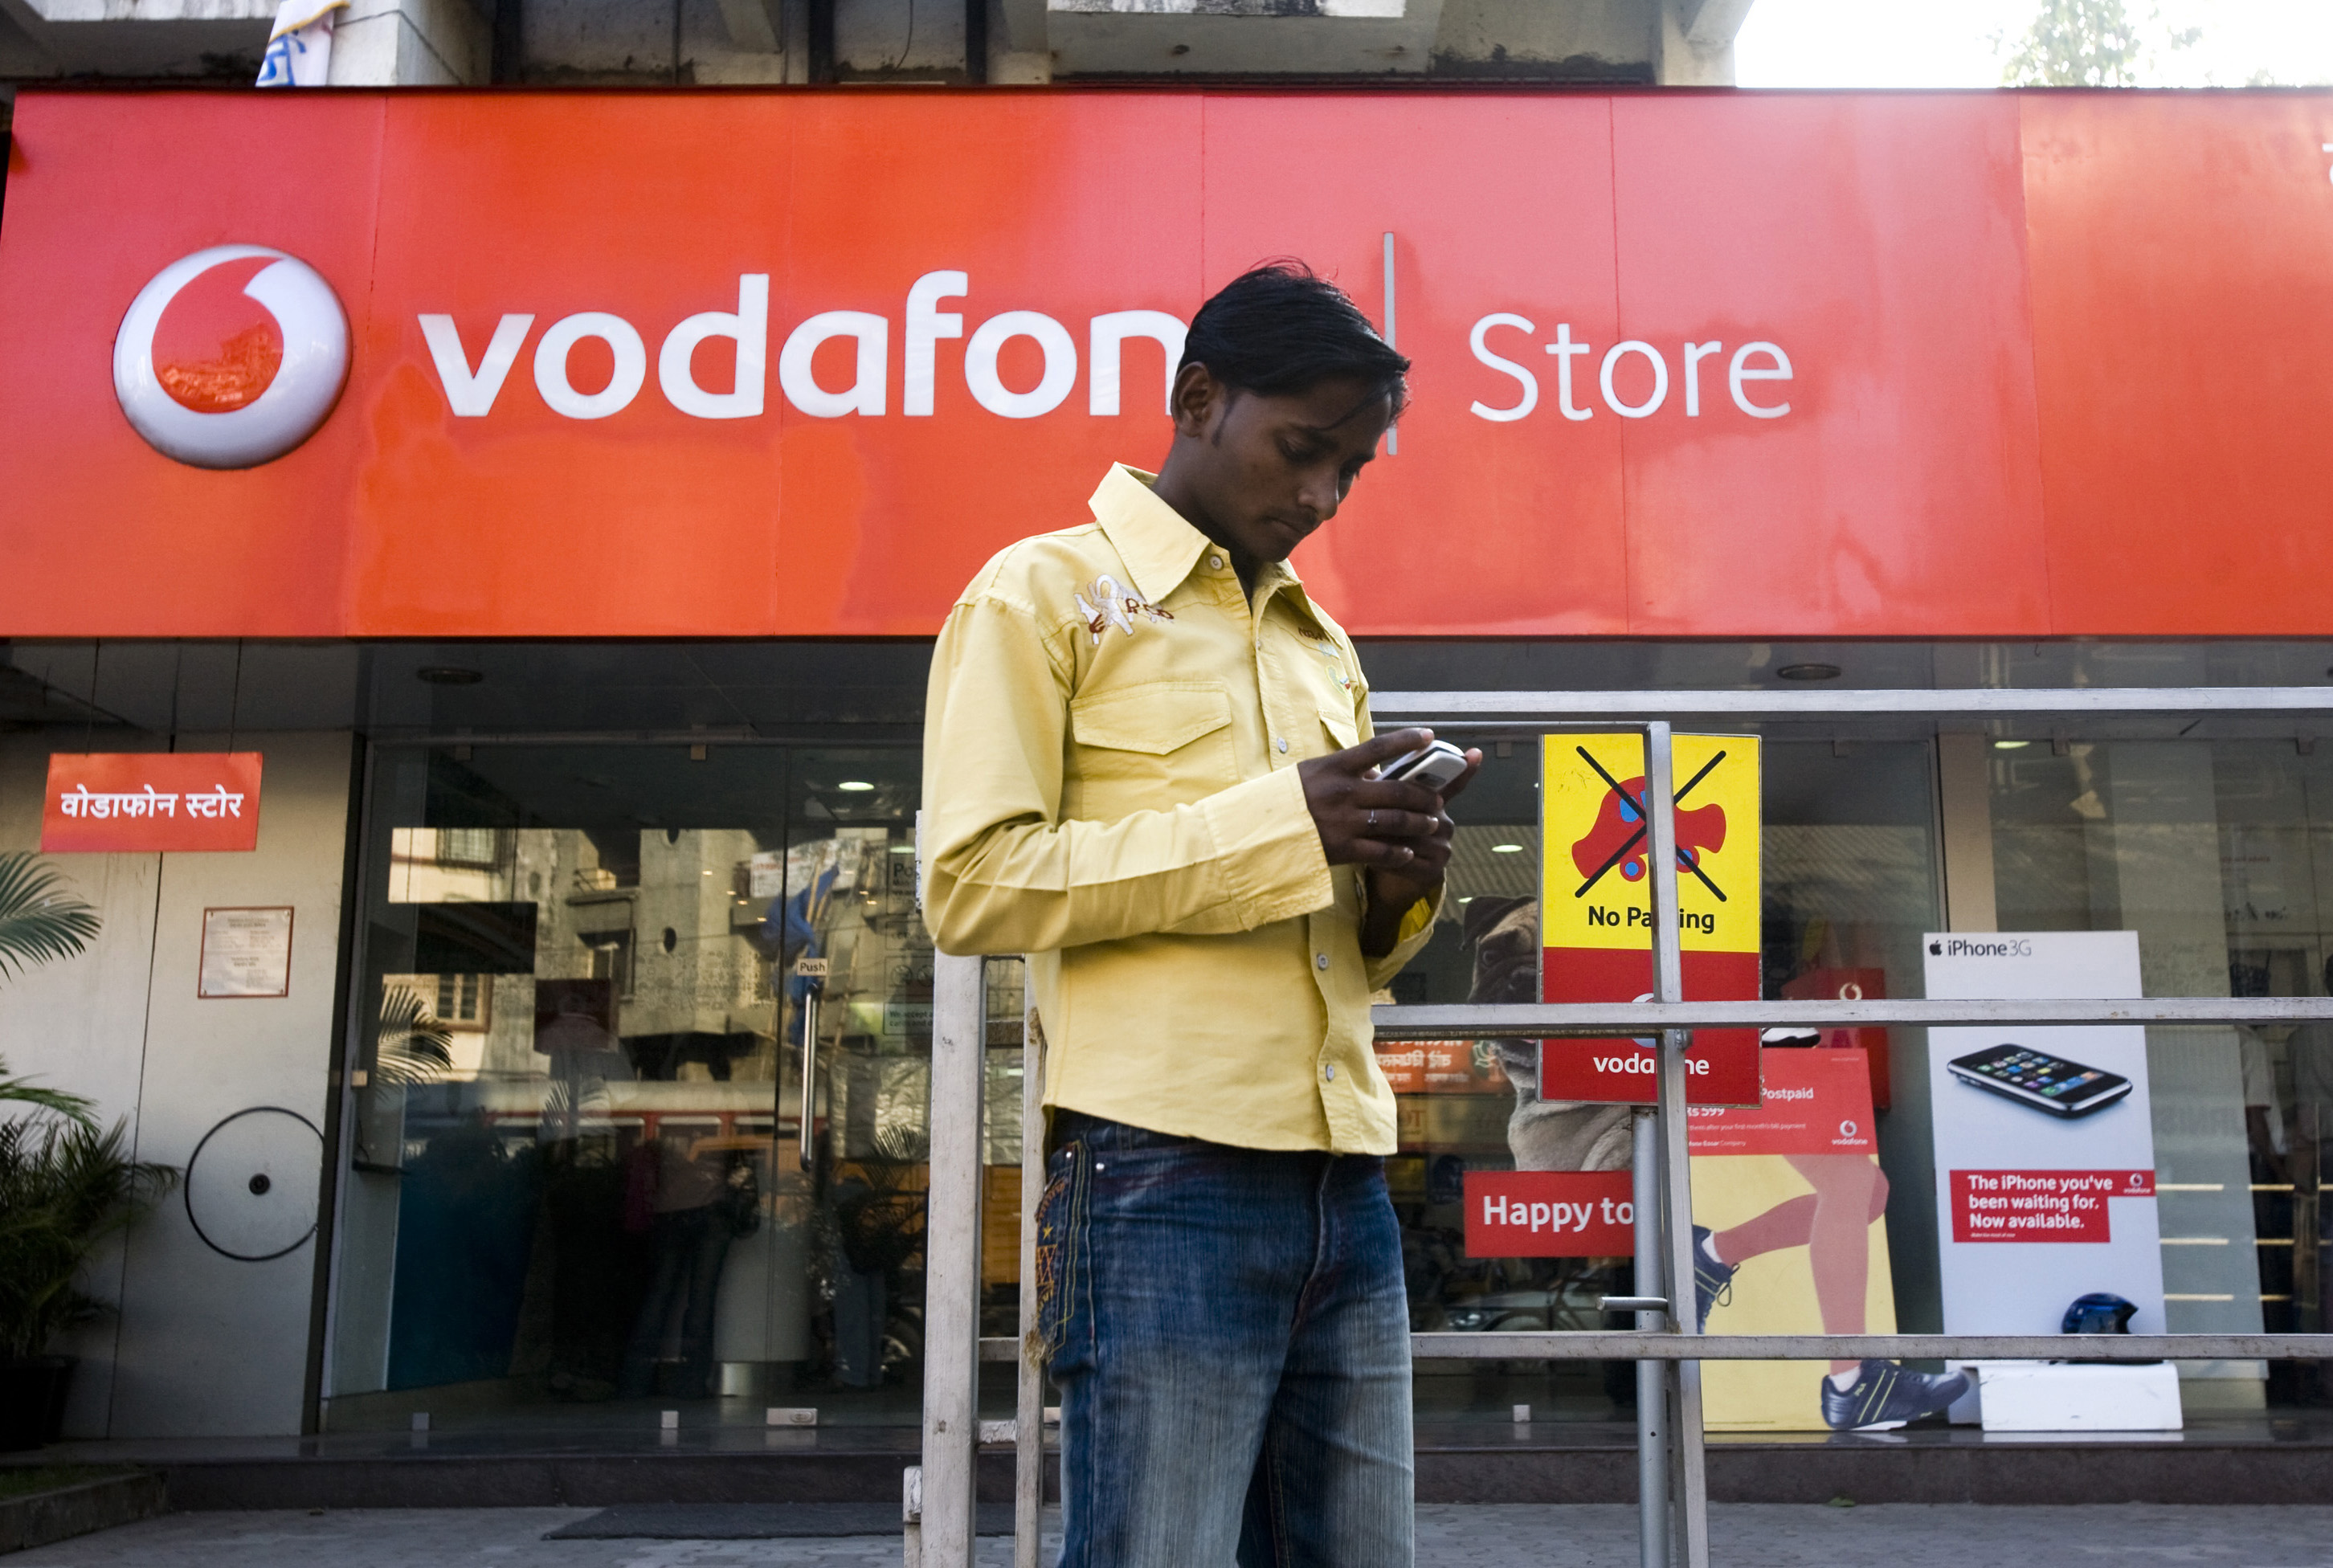 A pedestrian using a mobile phone stops outside a Vodafone s